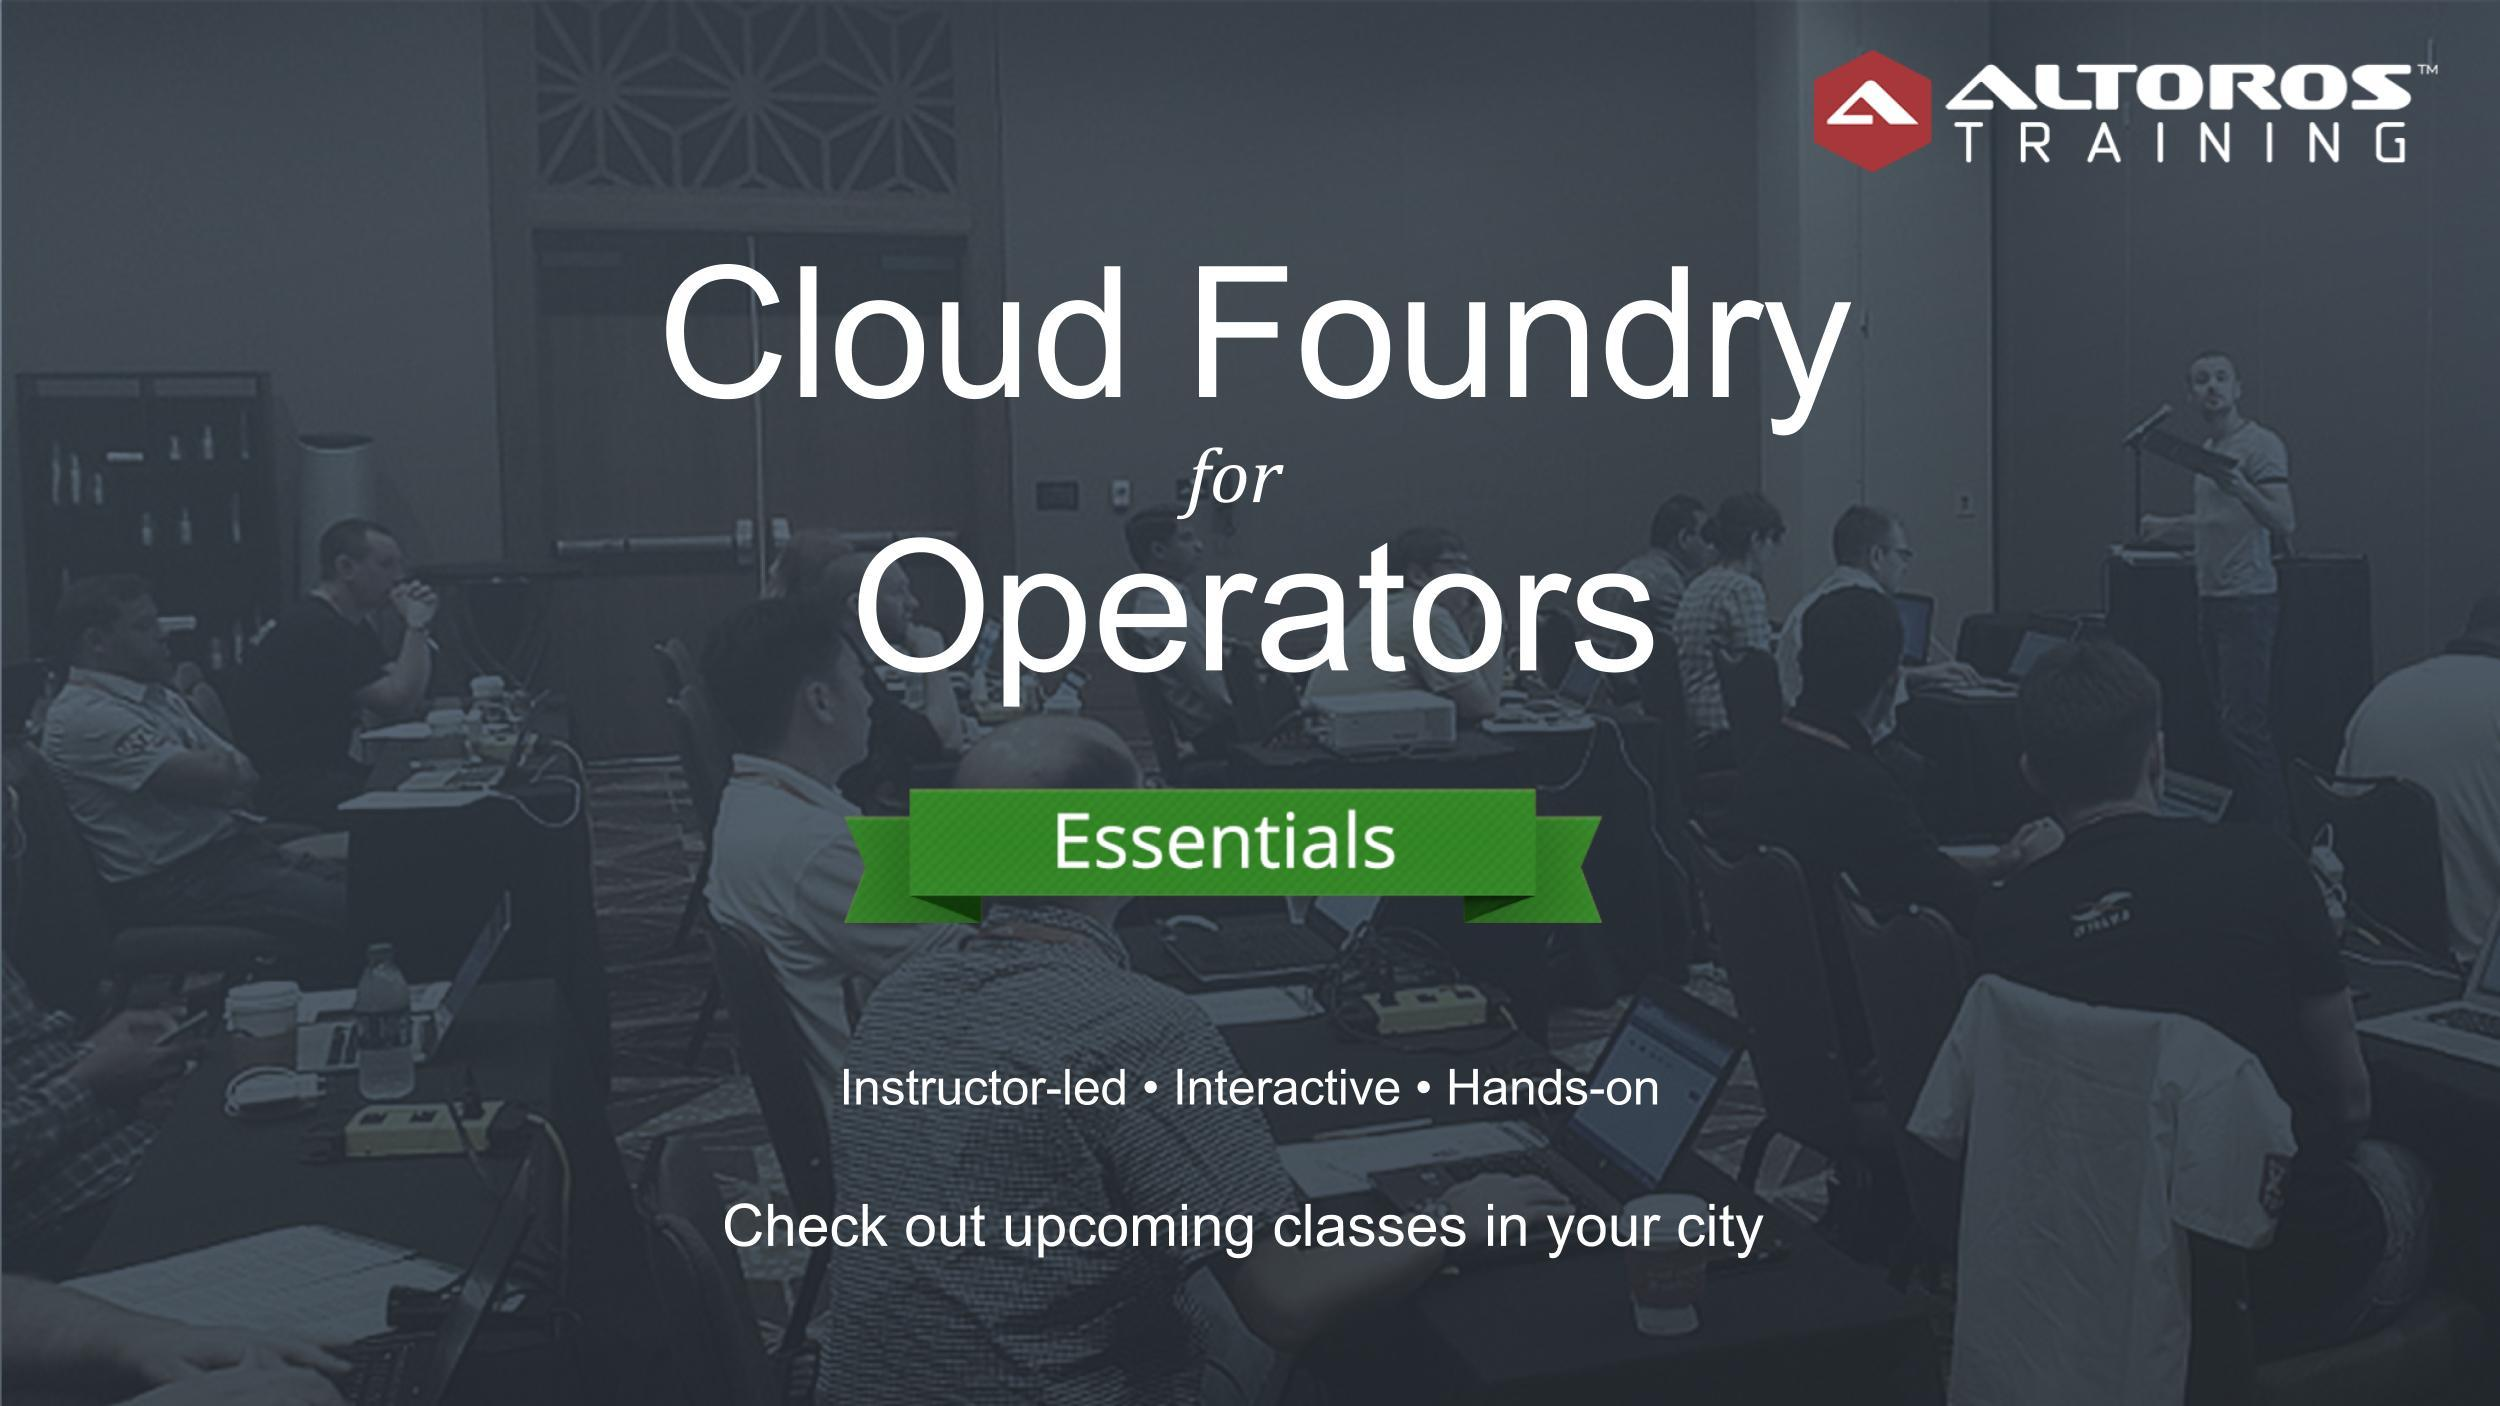 TRAINING in Chicago: Cloud Foundry for Operat